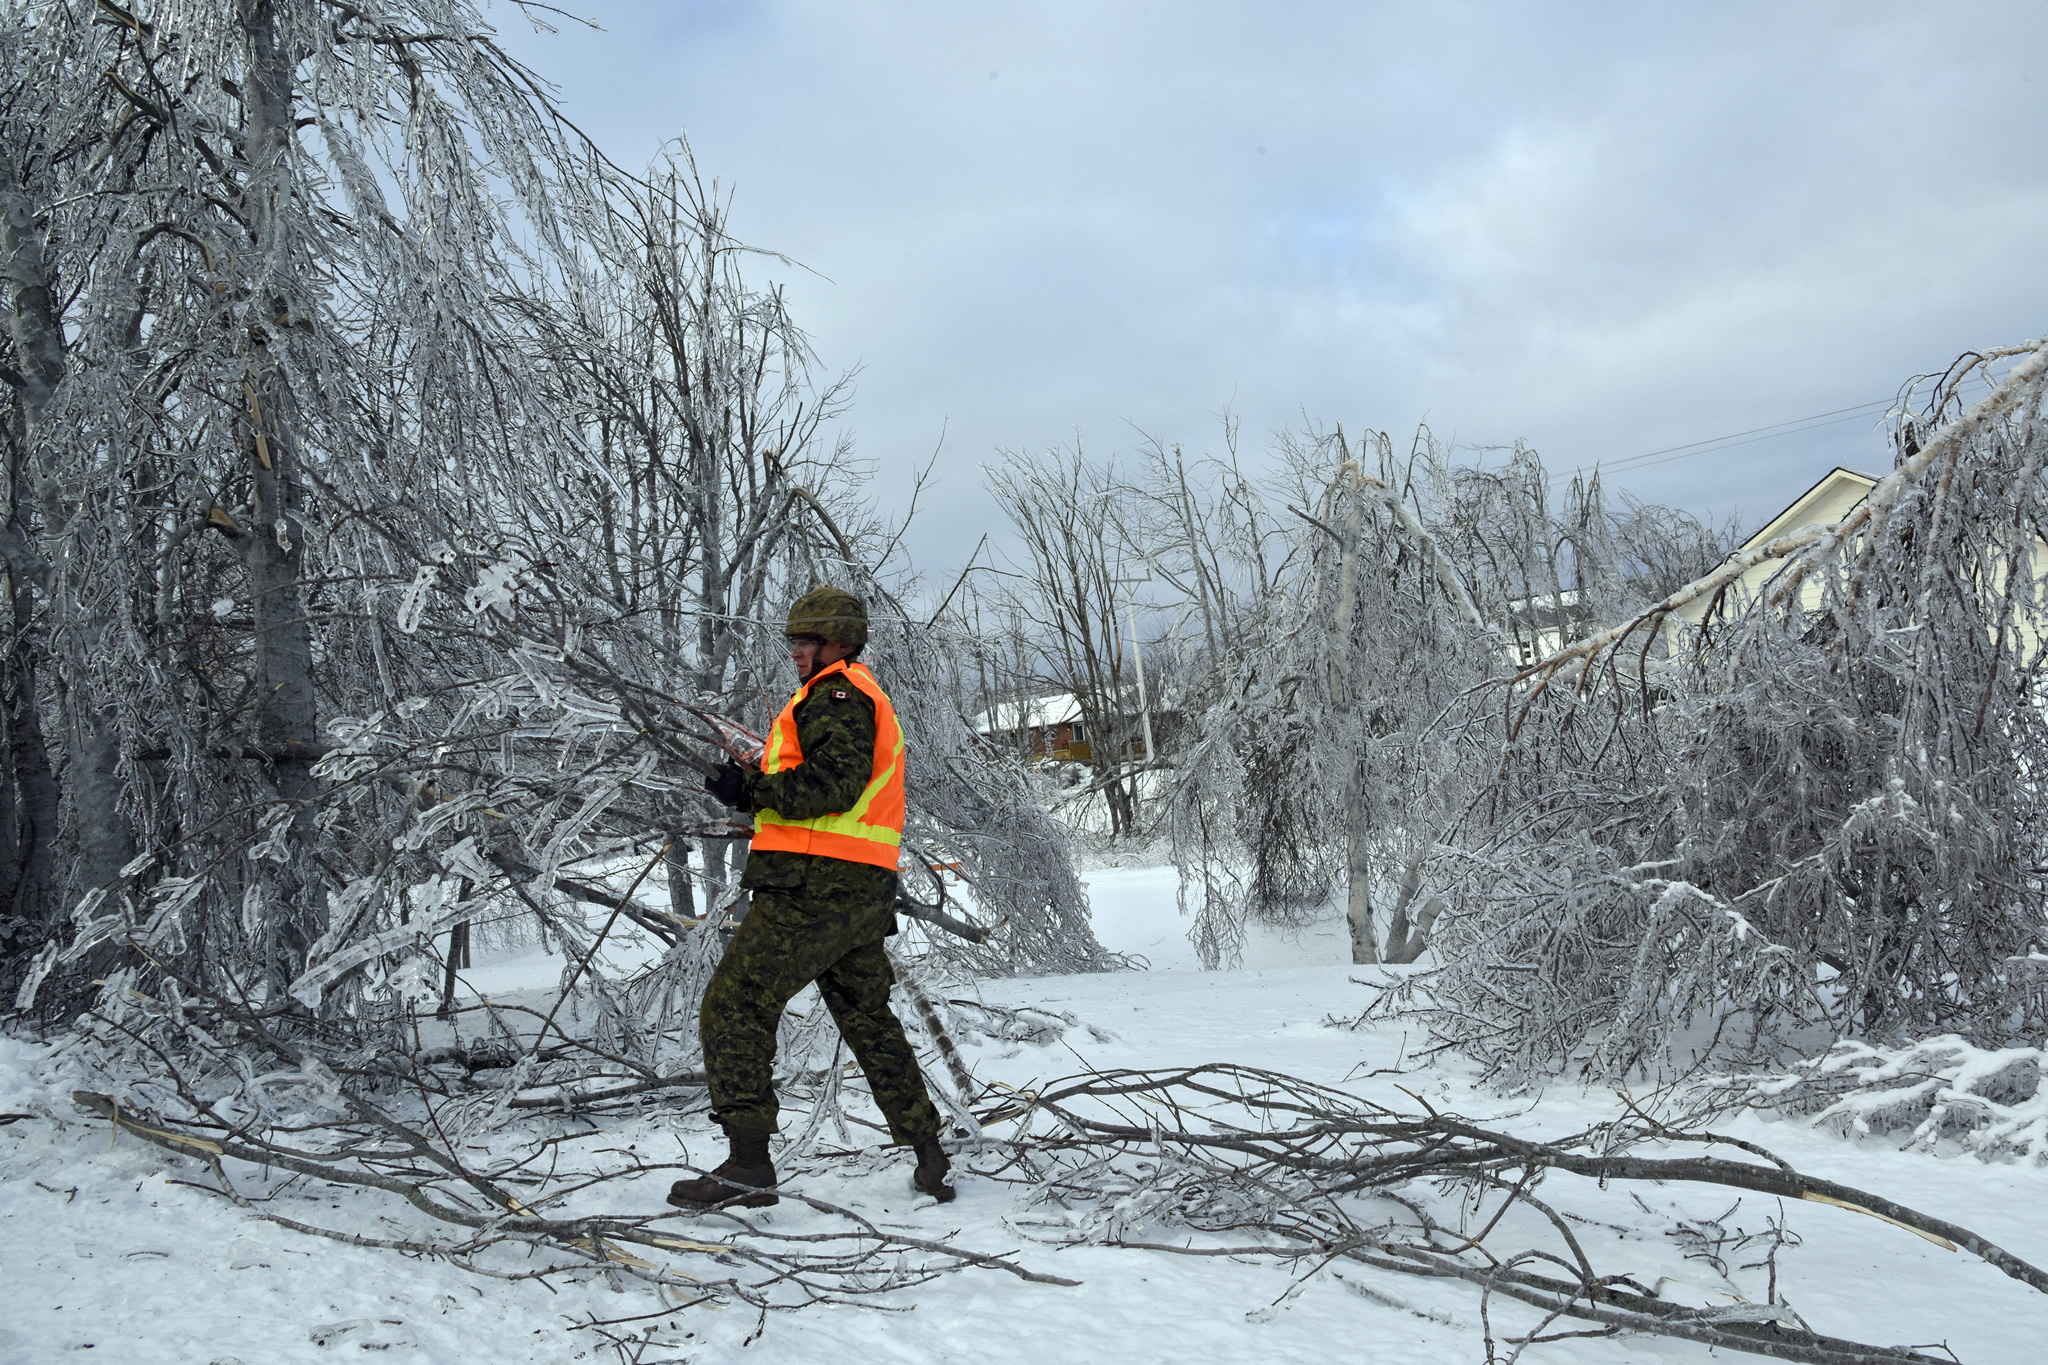 Man surrounded by icy trees lifts broken branches.